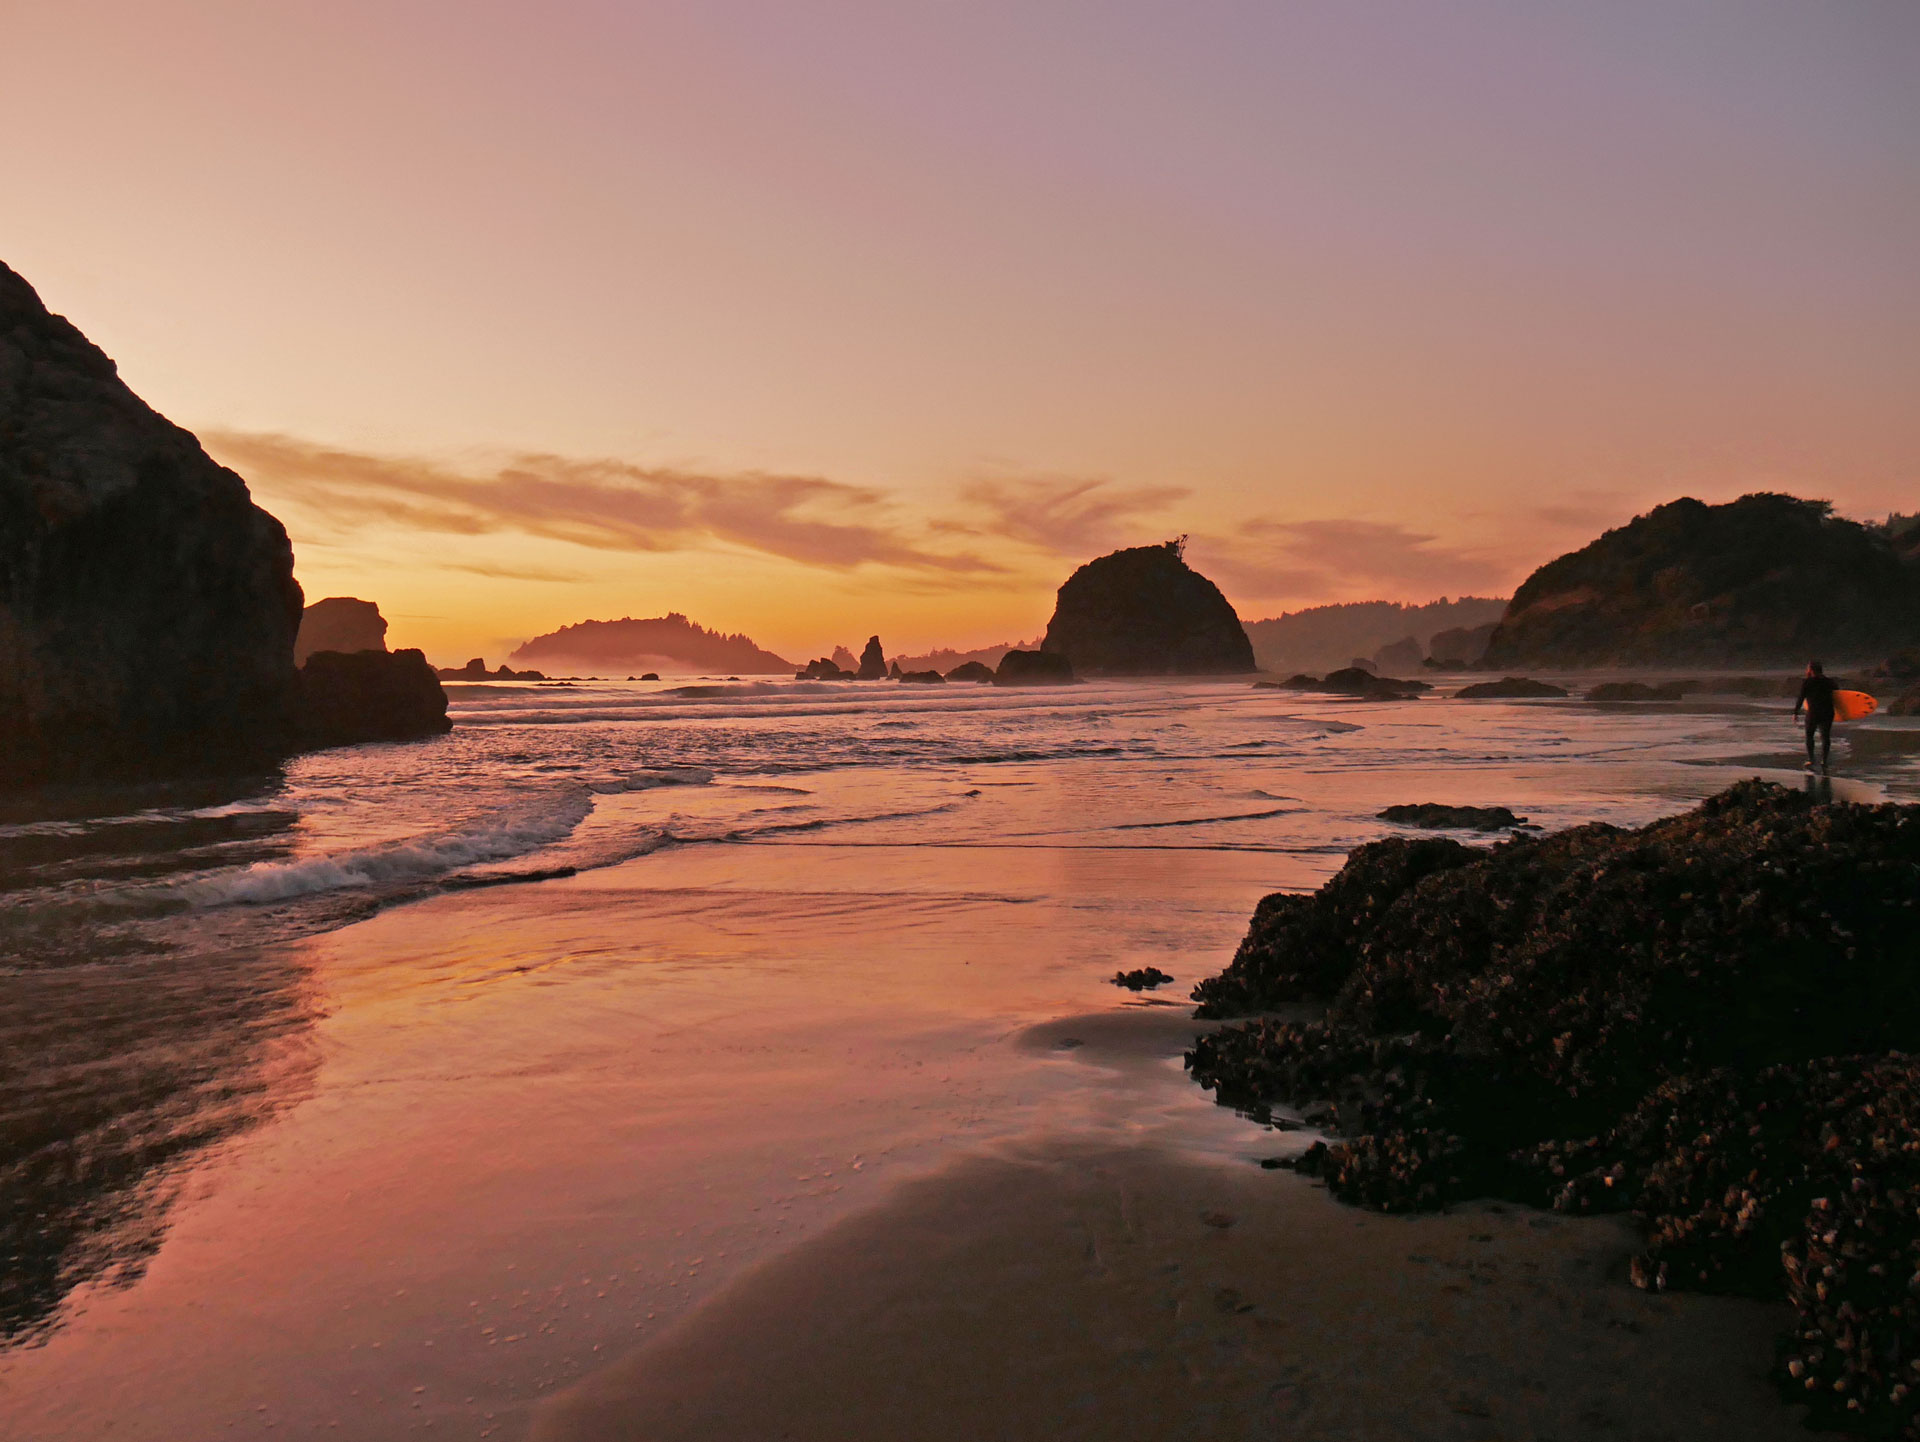 Surfer during sunset at Moonstone Beach in Northern California